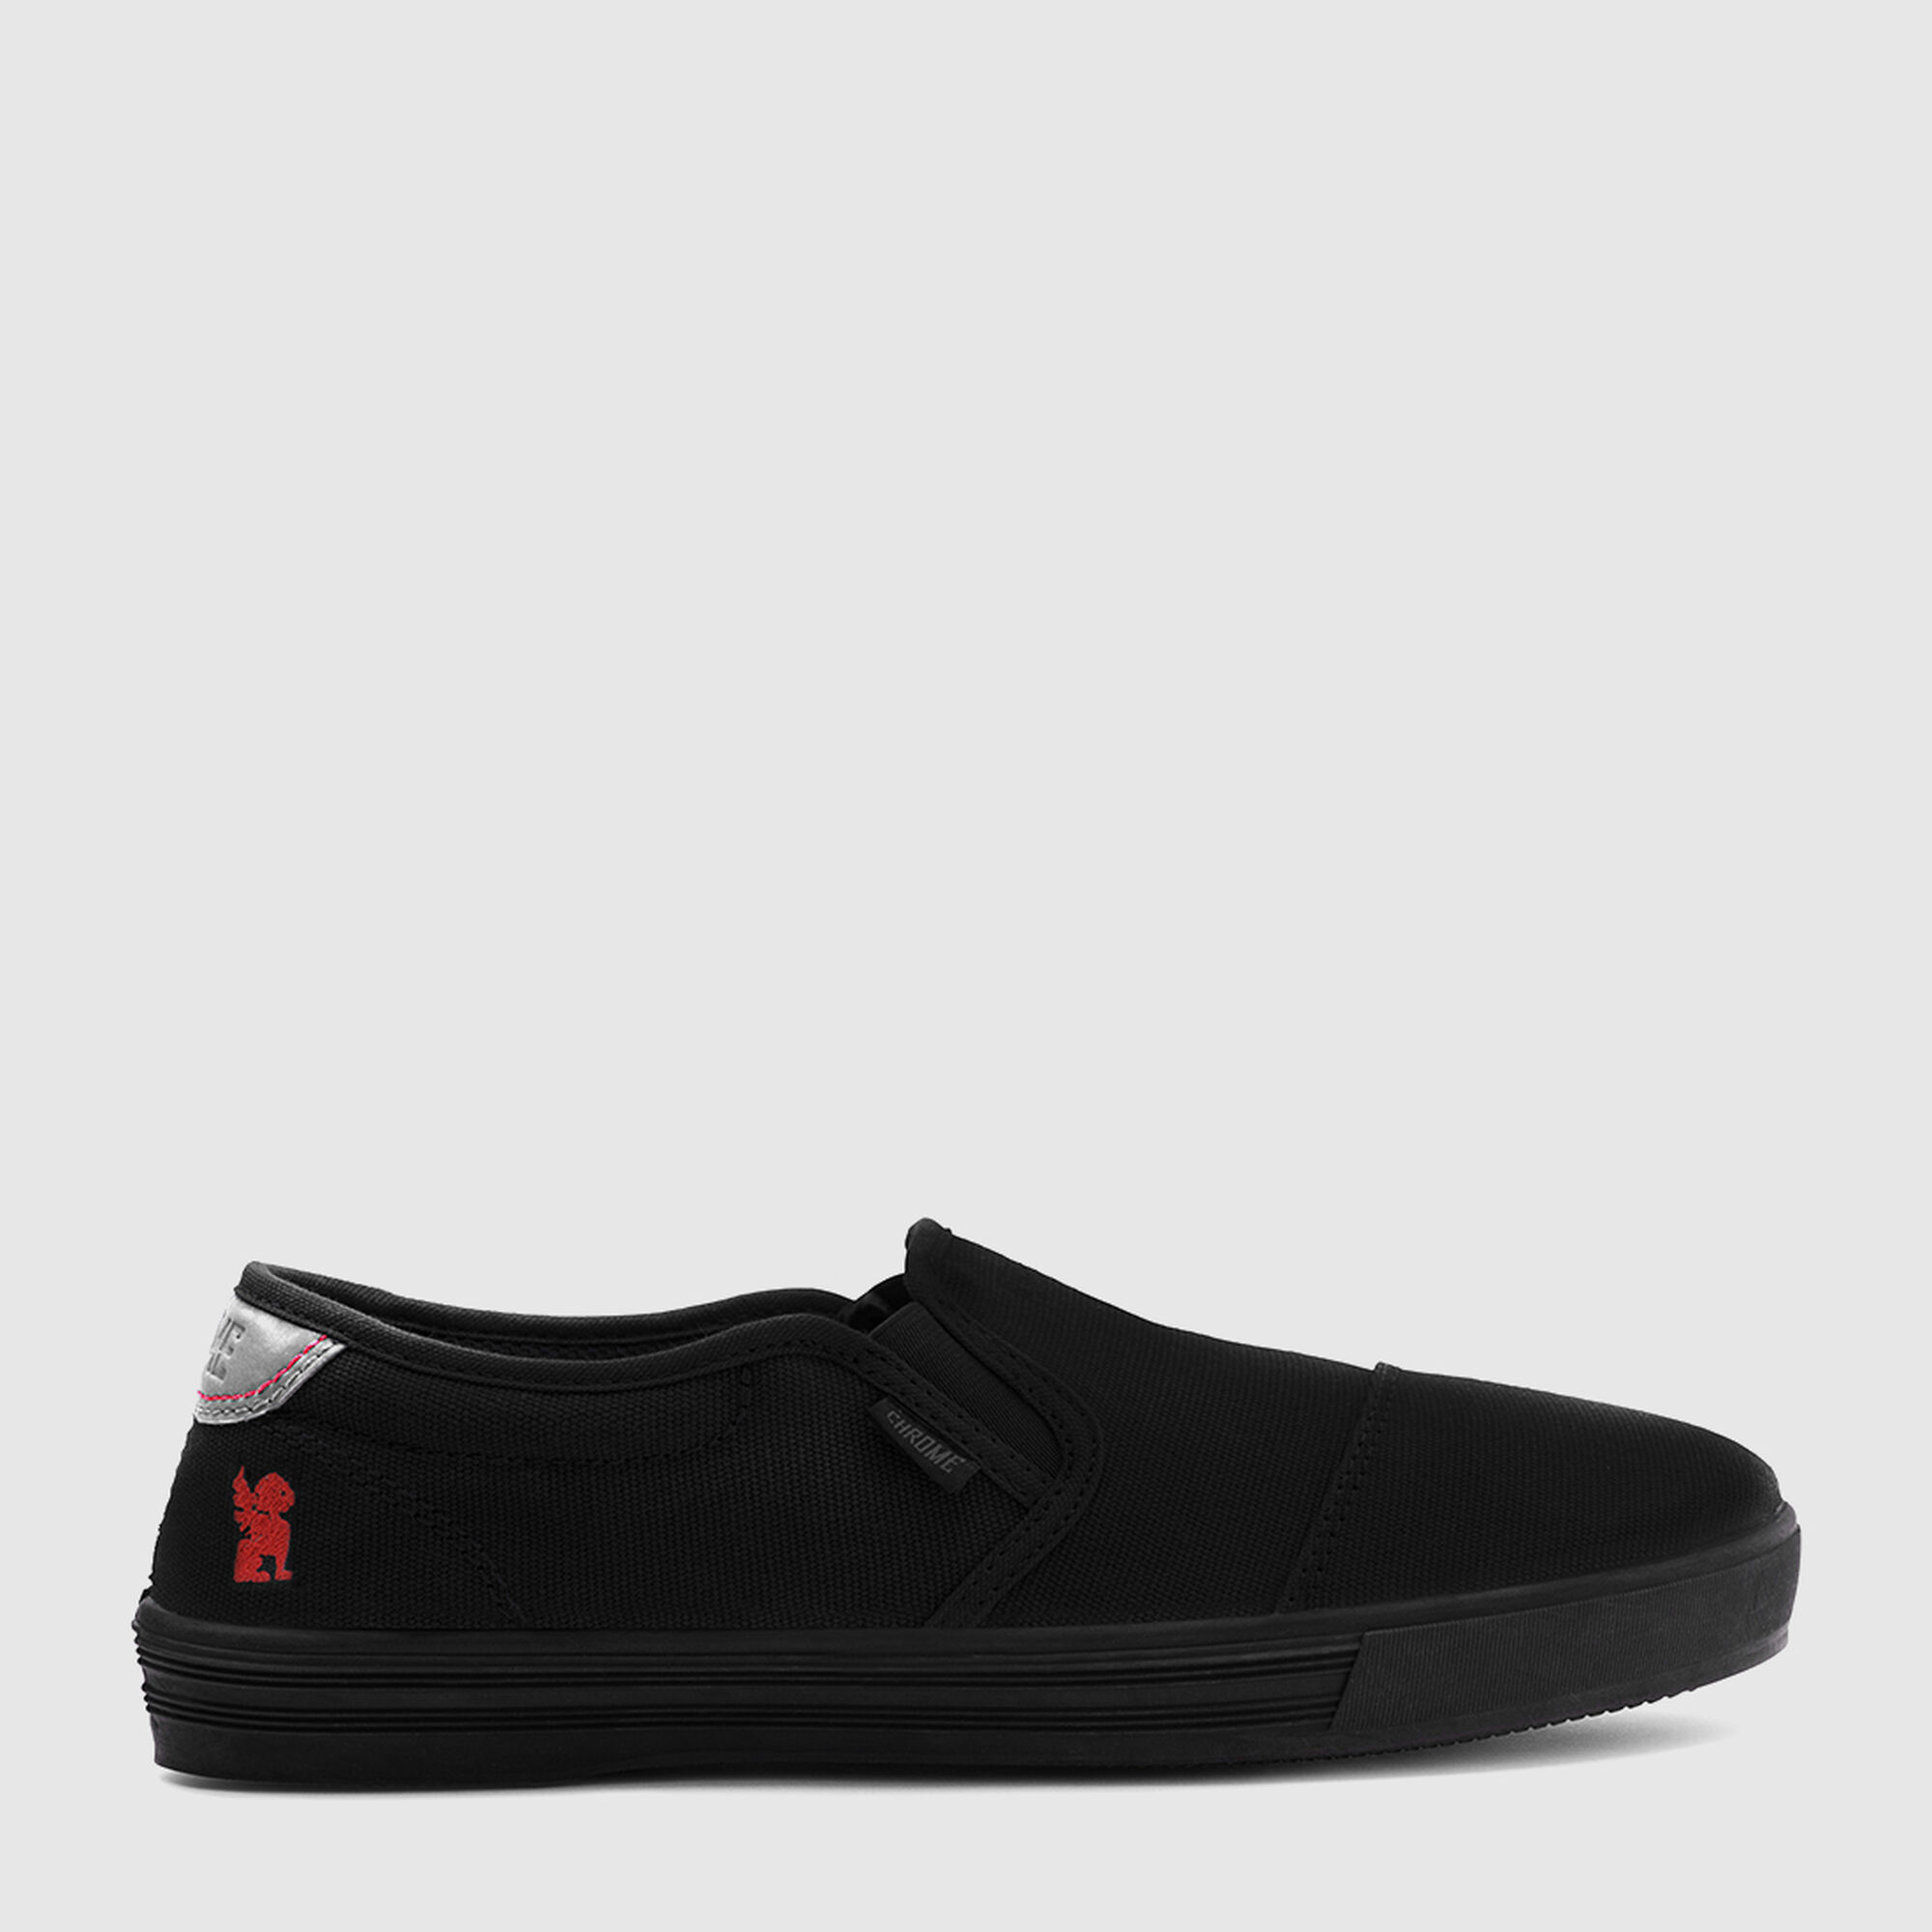 Dima Sneaker Tough Kicks Chrome Industries D Island Shoes Slip On Loafers Comfort Leather Dark Brown In Black Small View